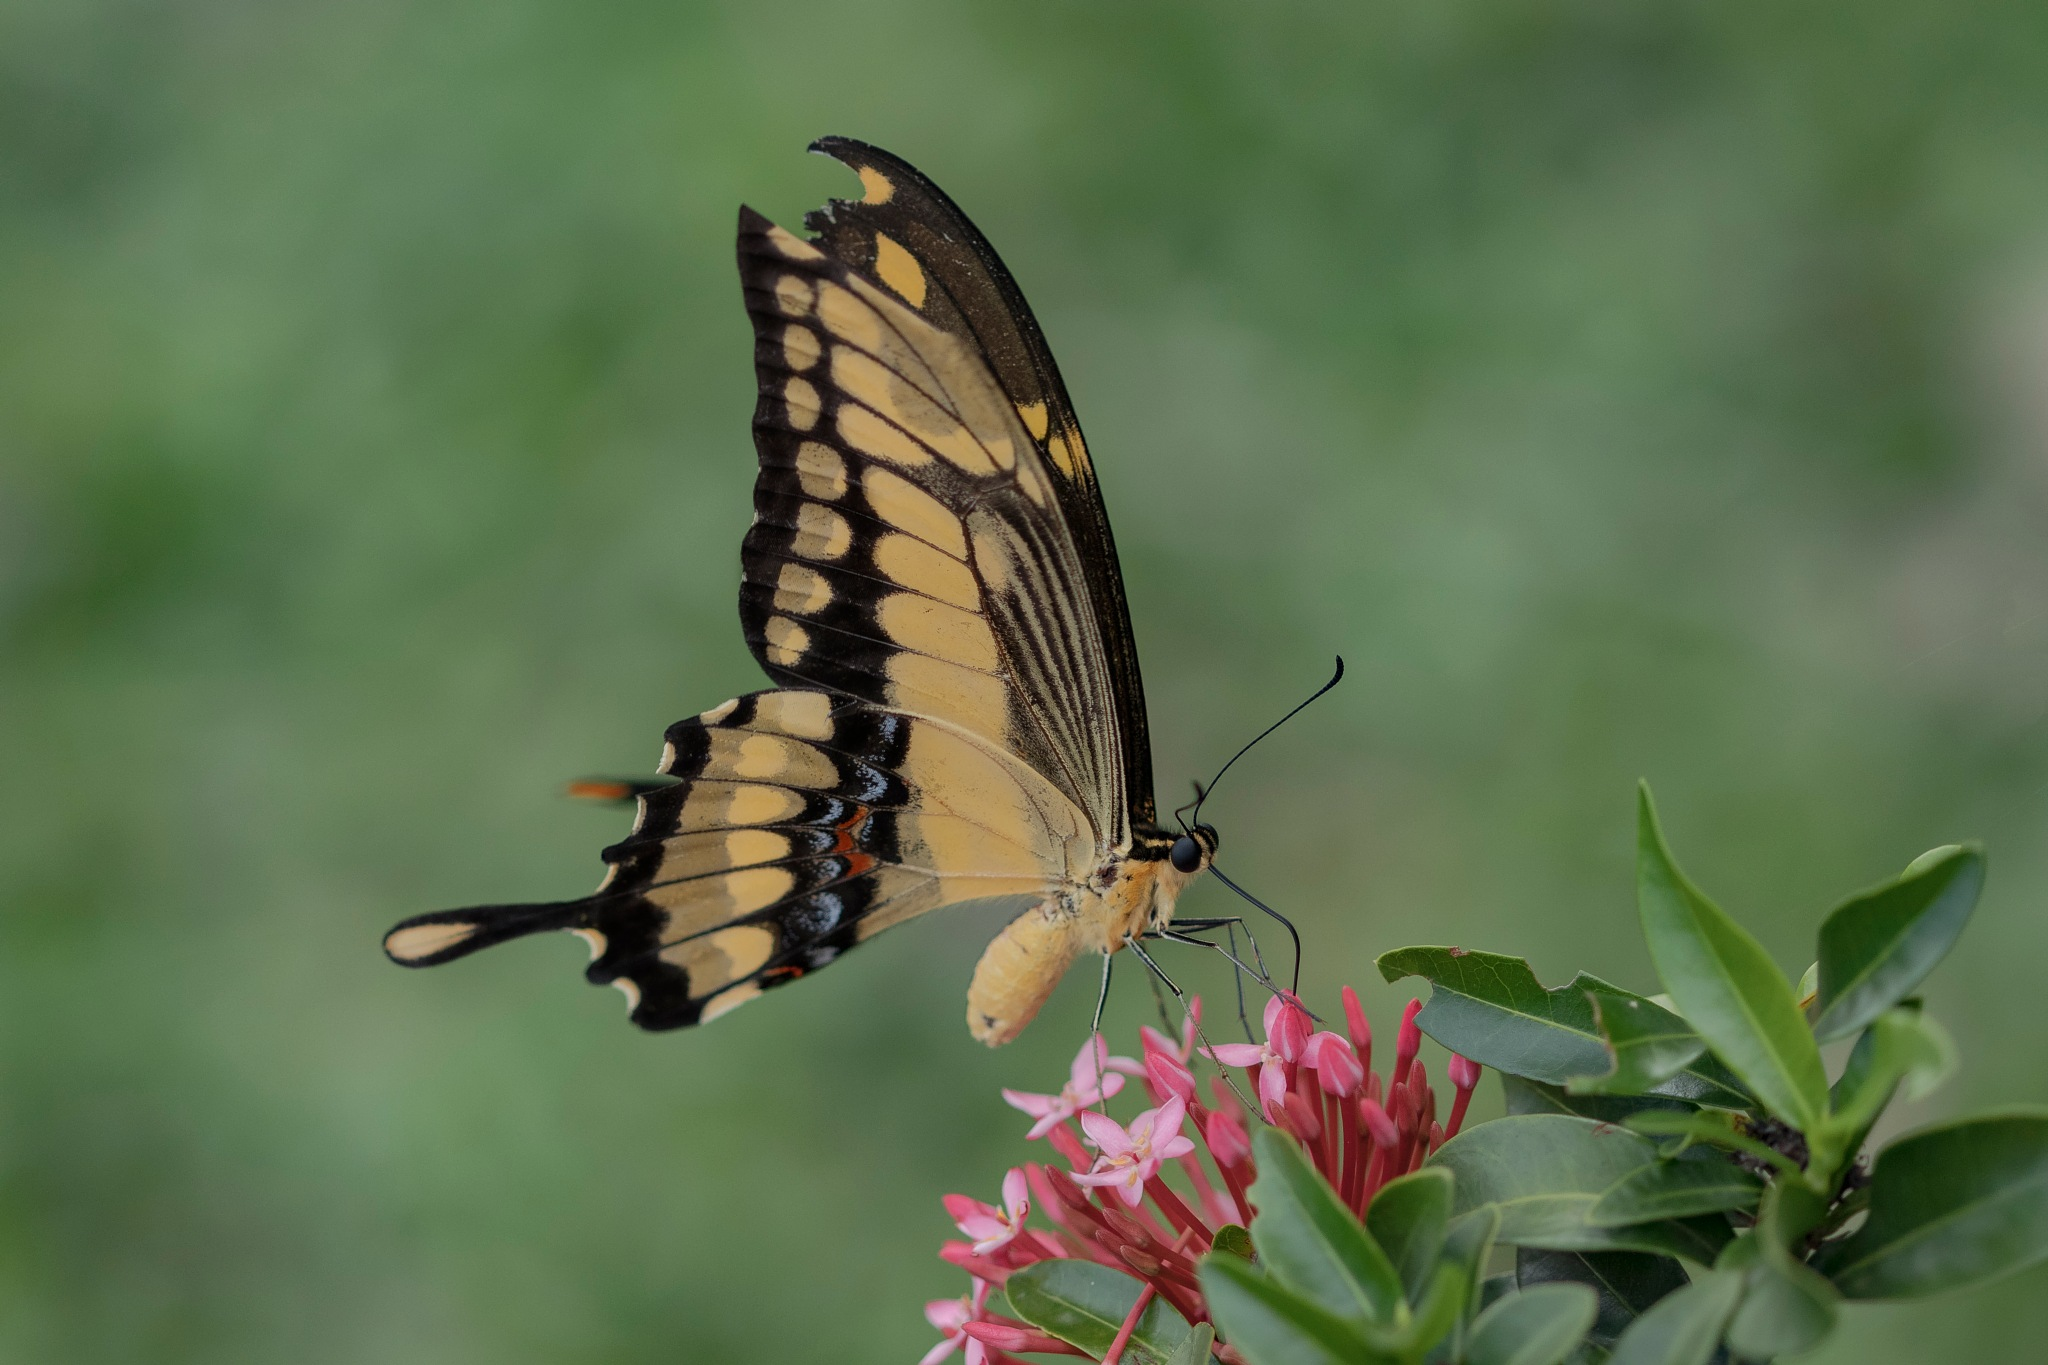 Butterfly and flowers by Rui Oliveira Santos